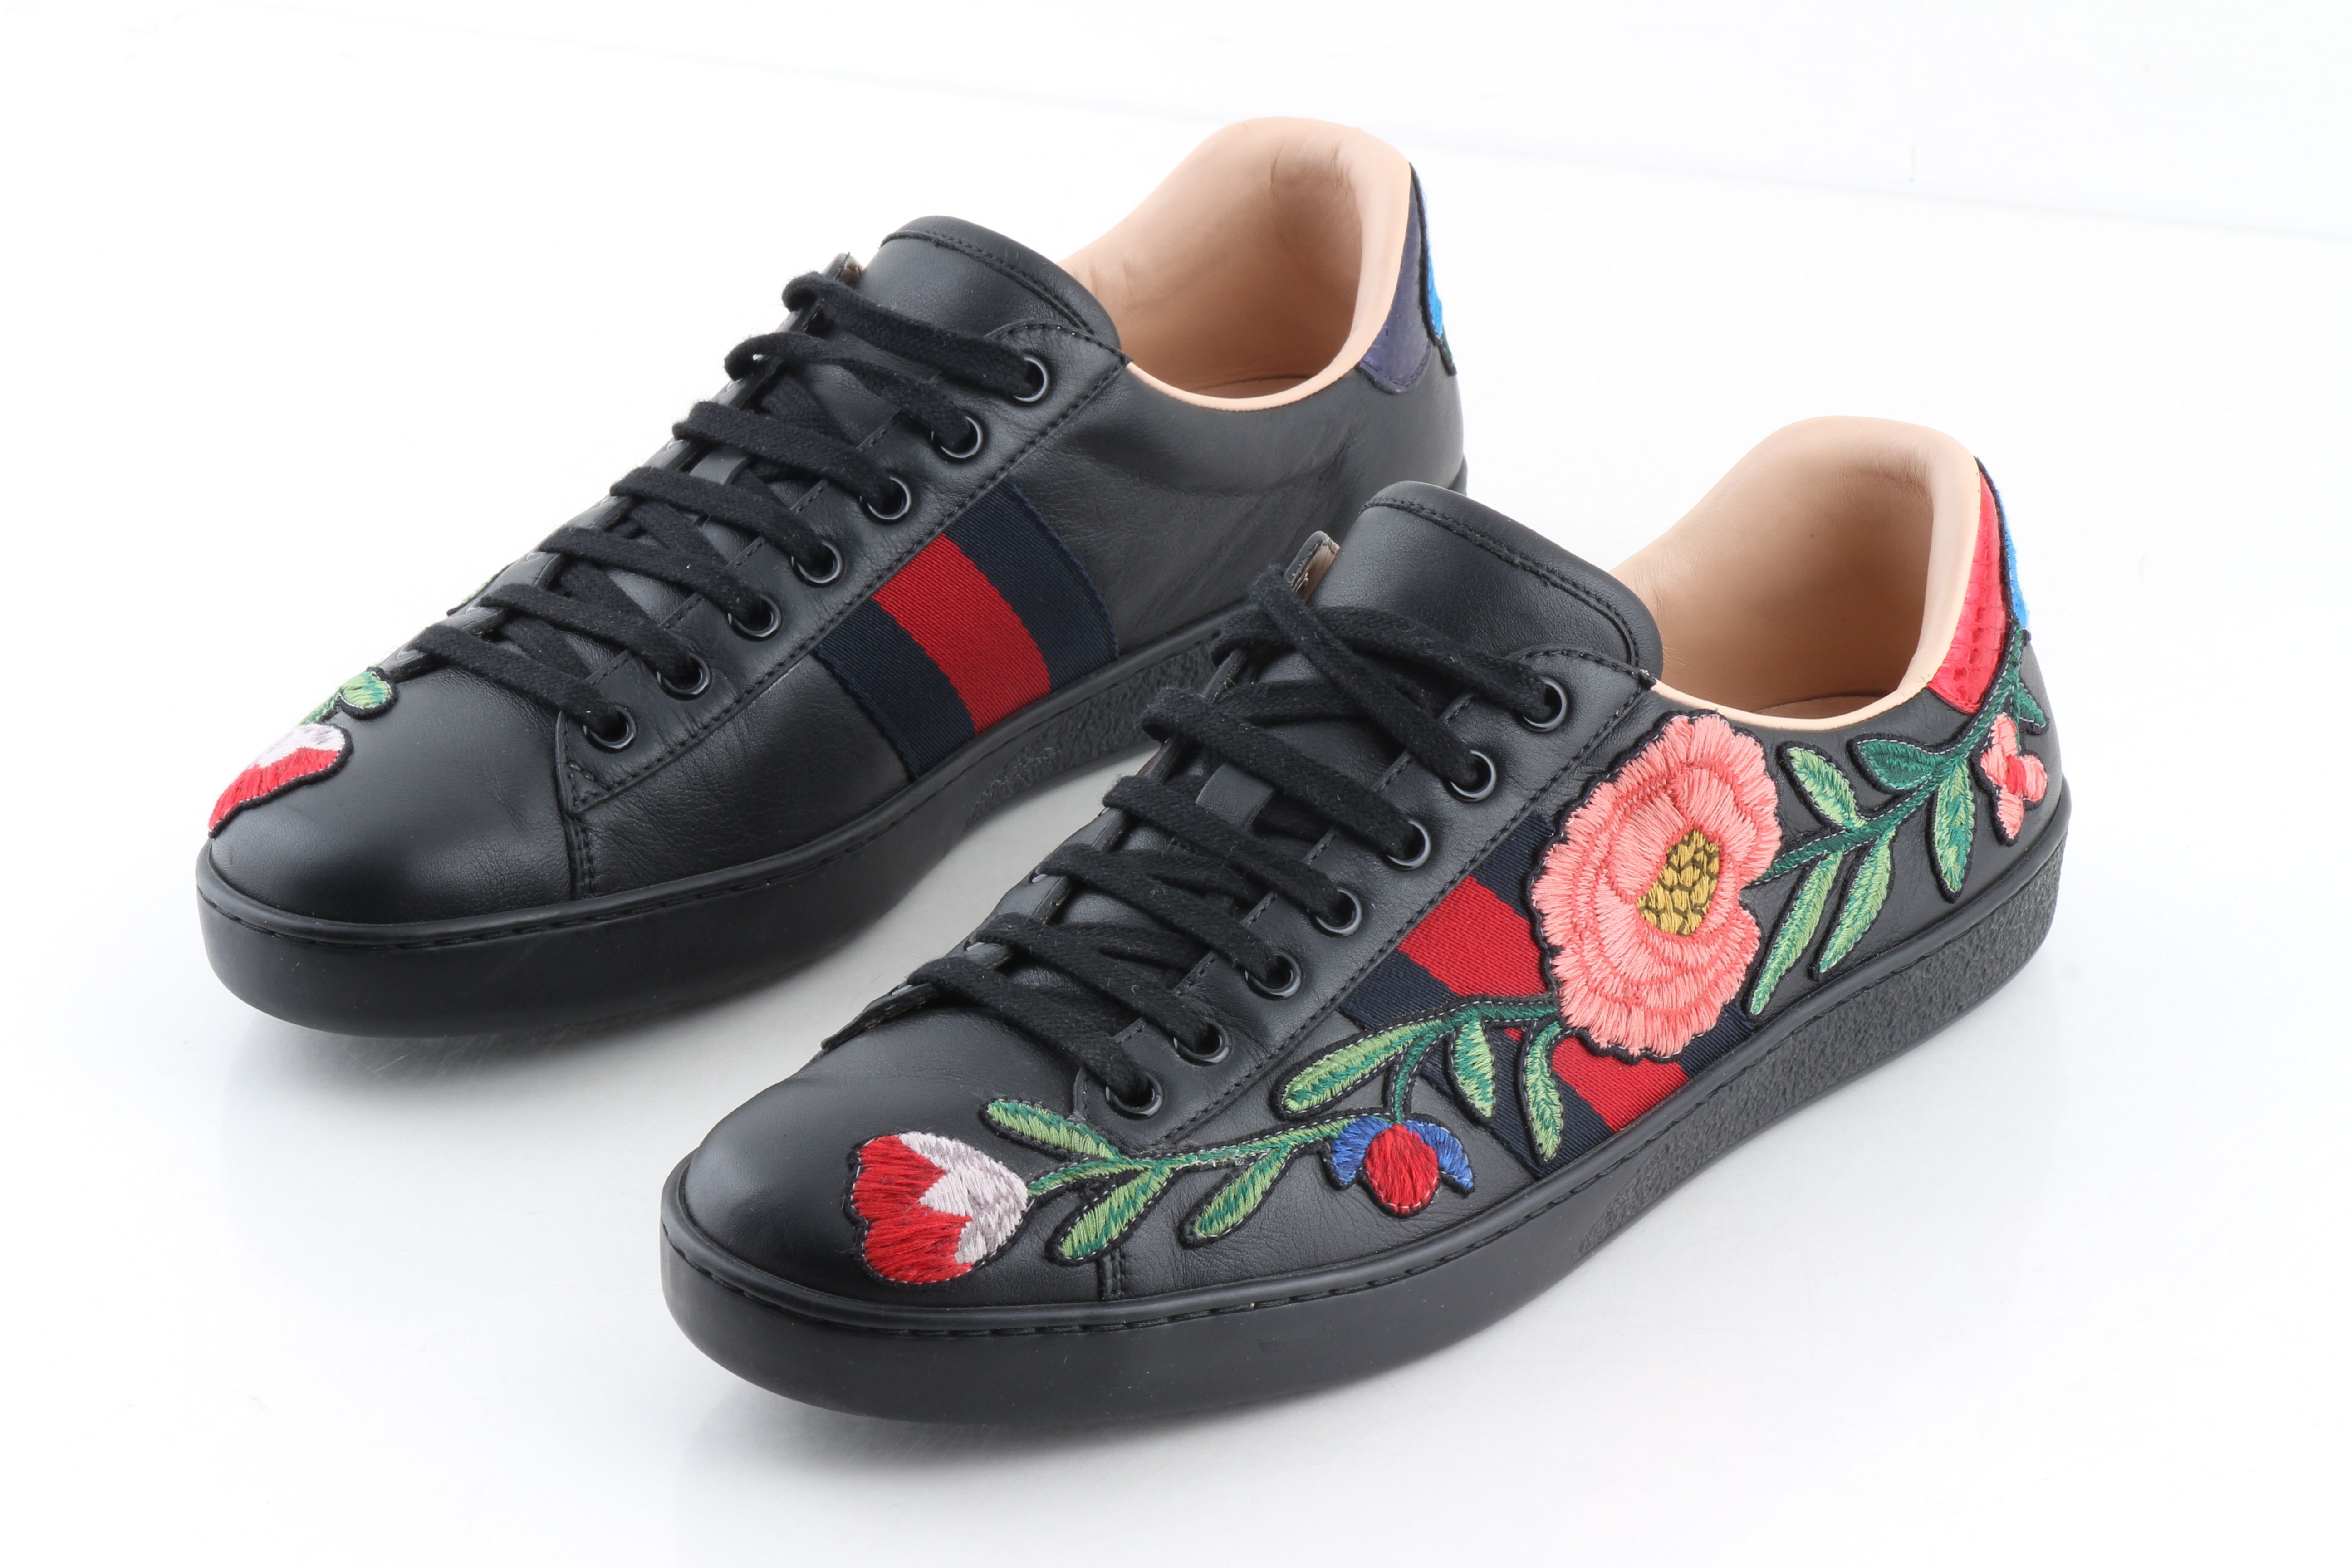 Gucci Ace Floral Sneakers Sport Black